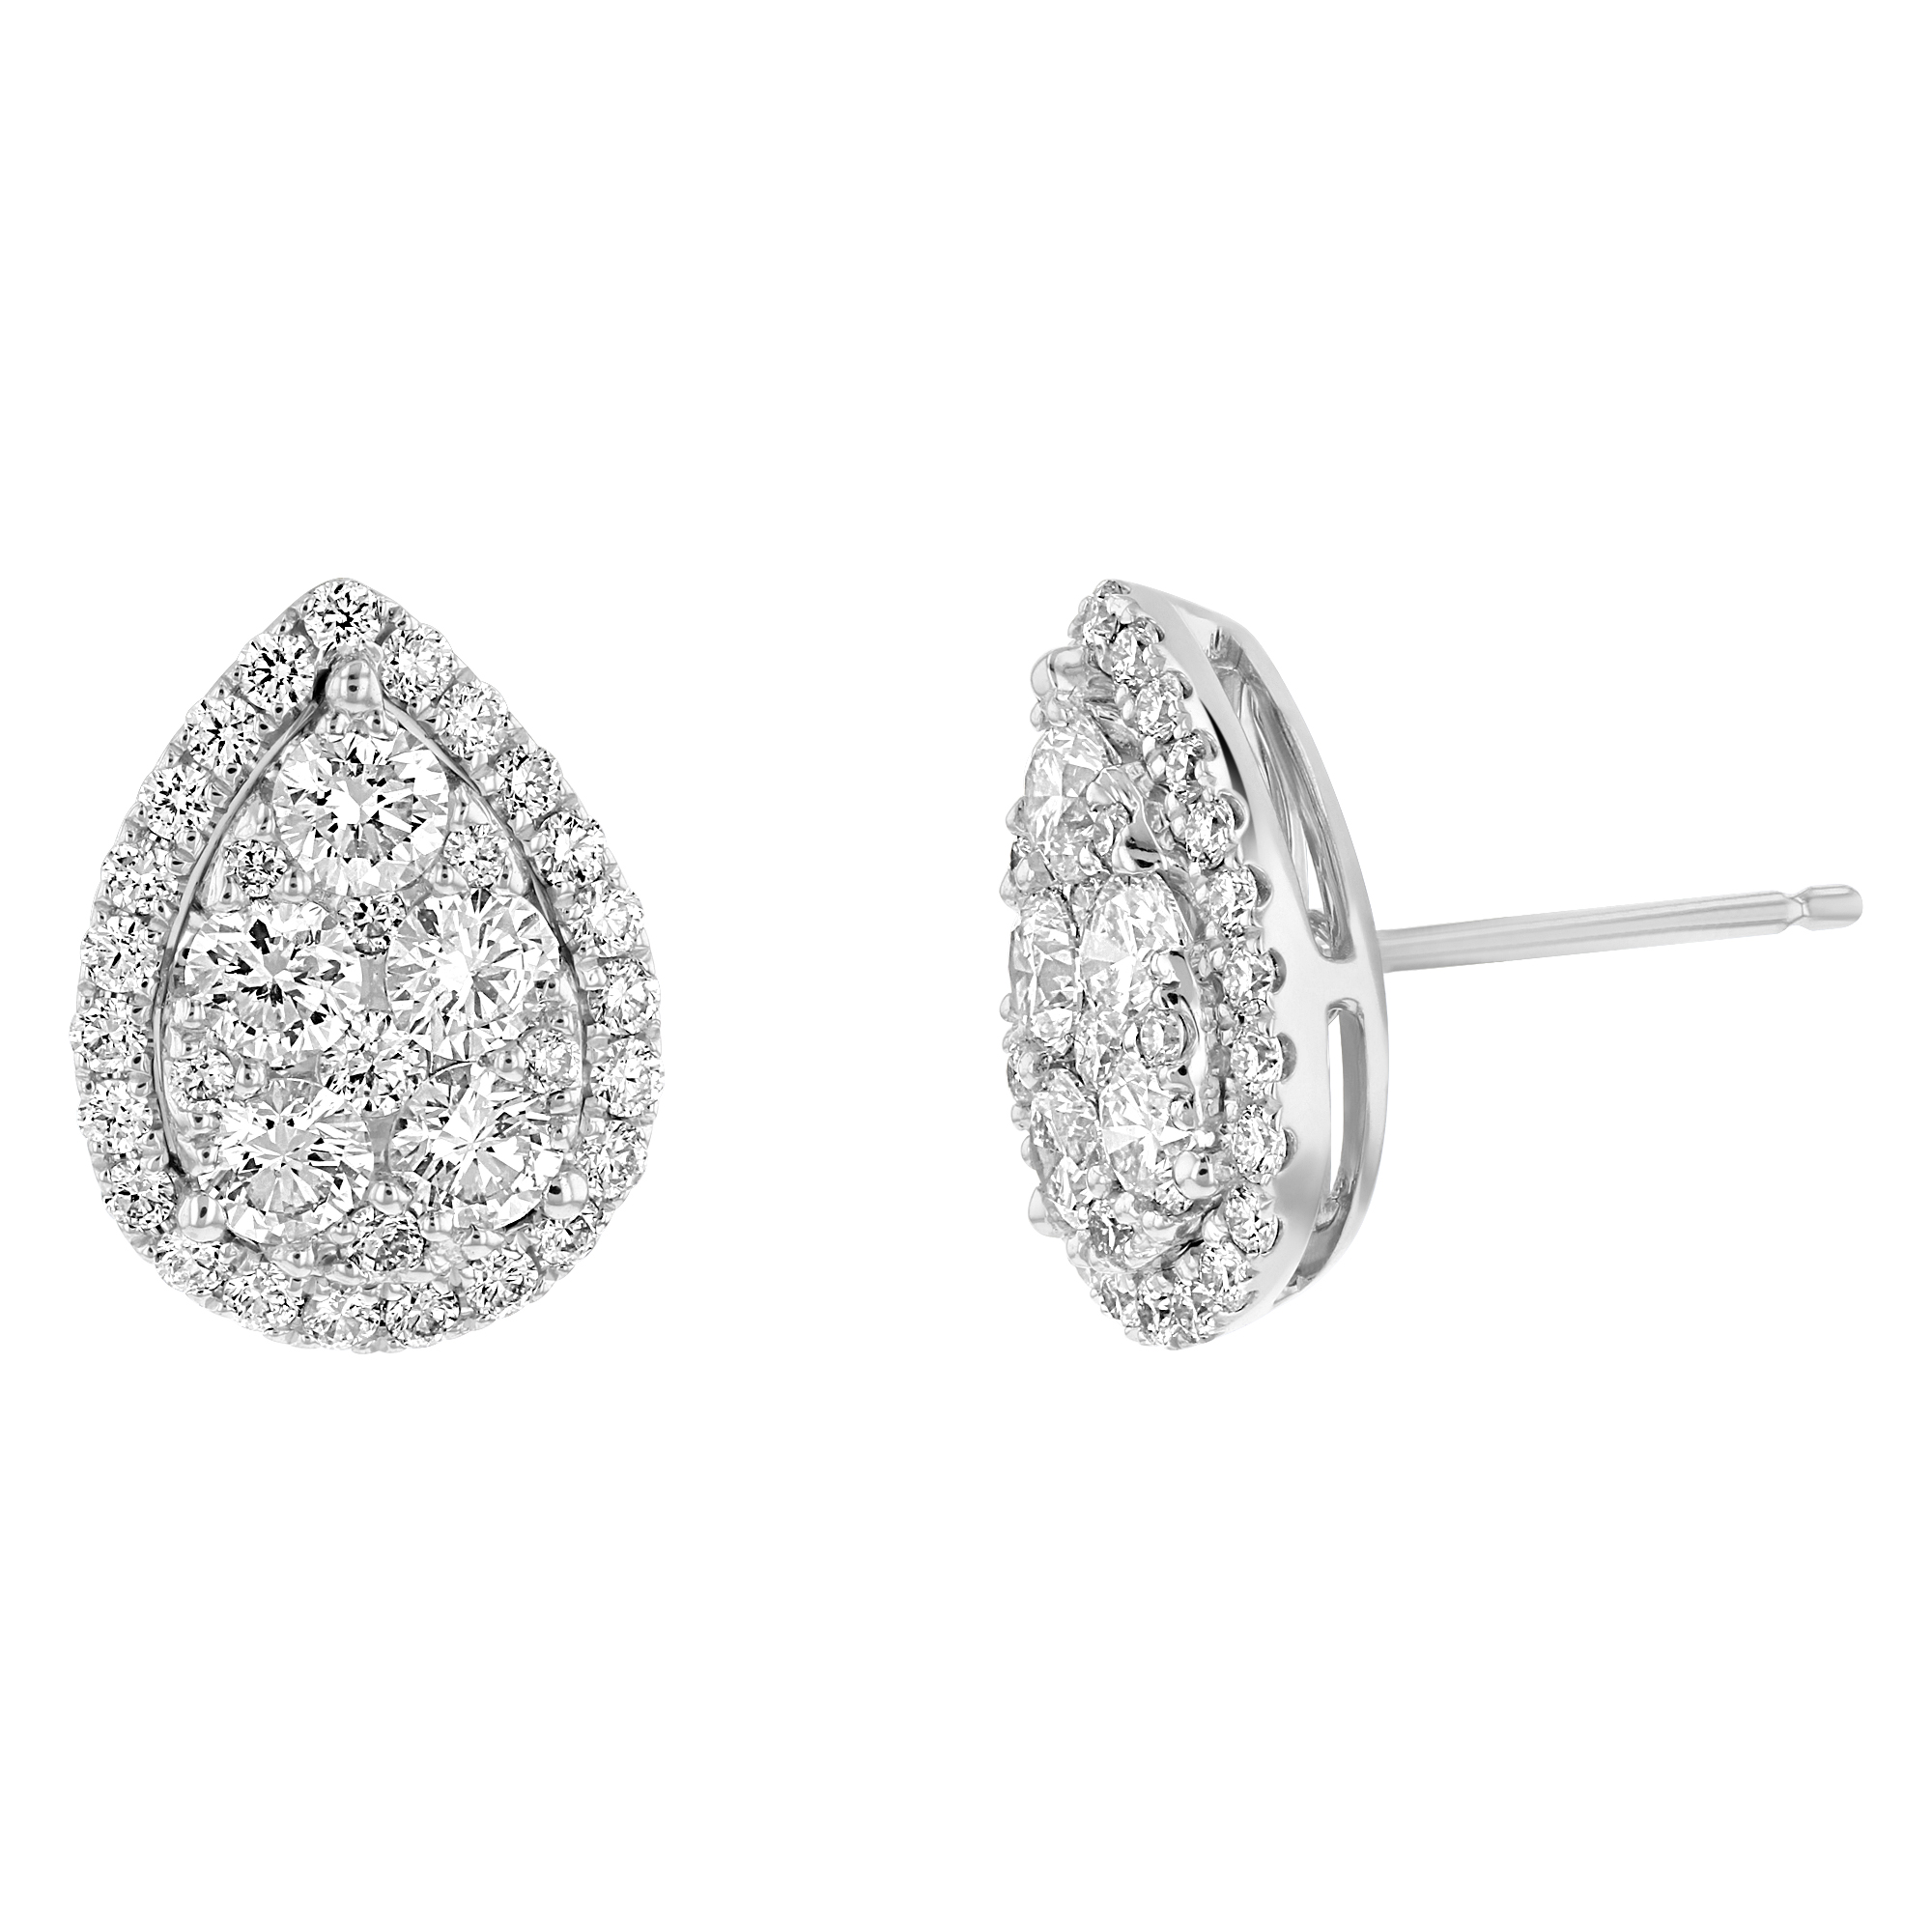 View 1.49ctw Diamond Pear Shaped Cluster Earring in 18k White Gold